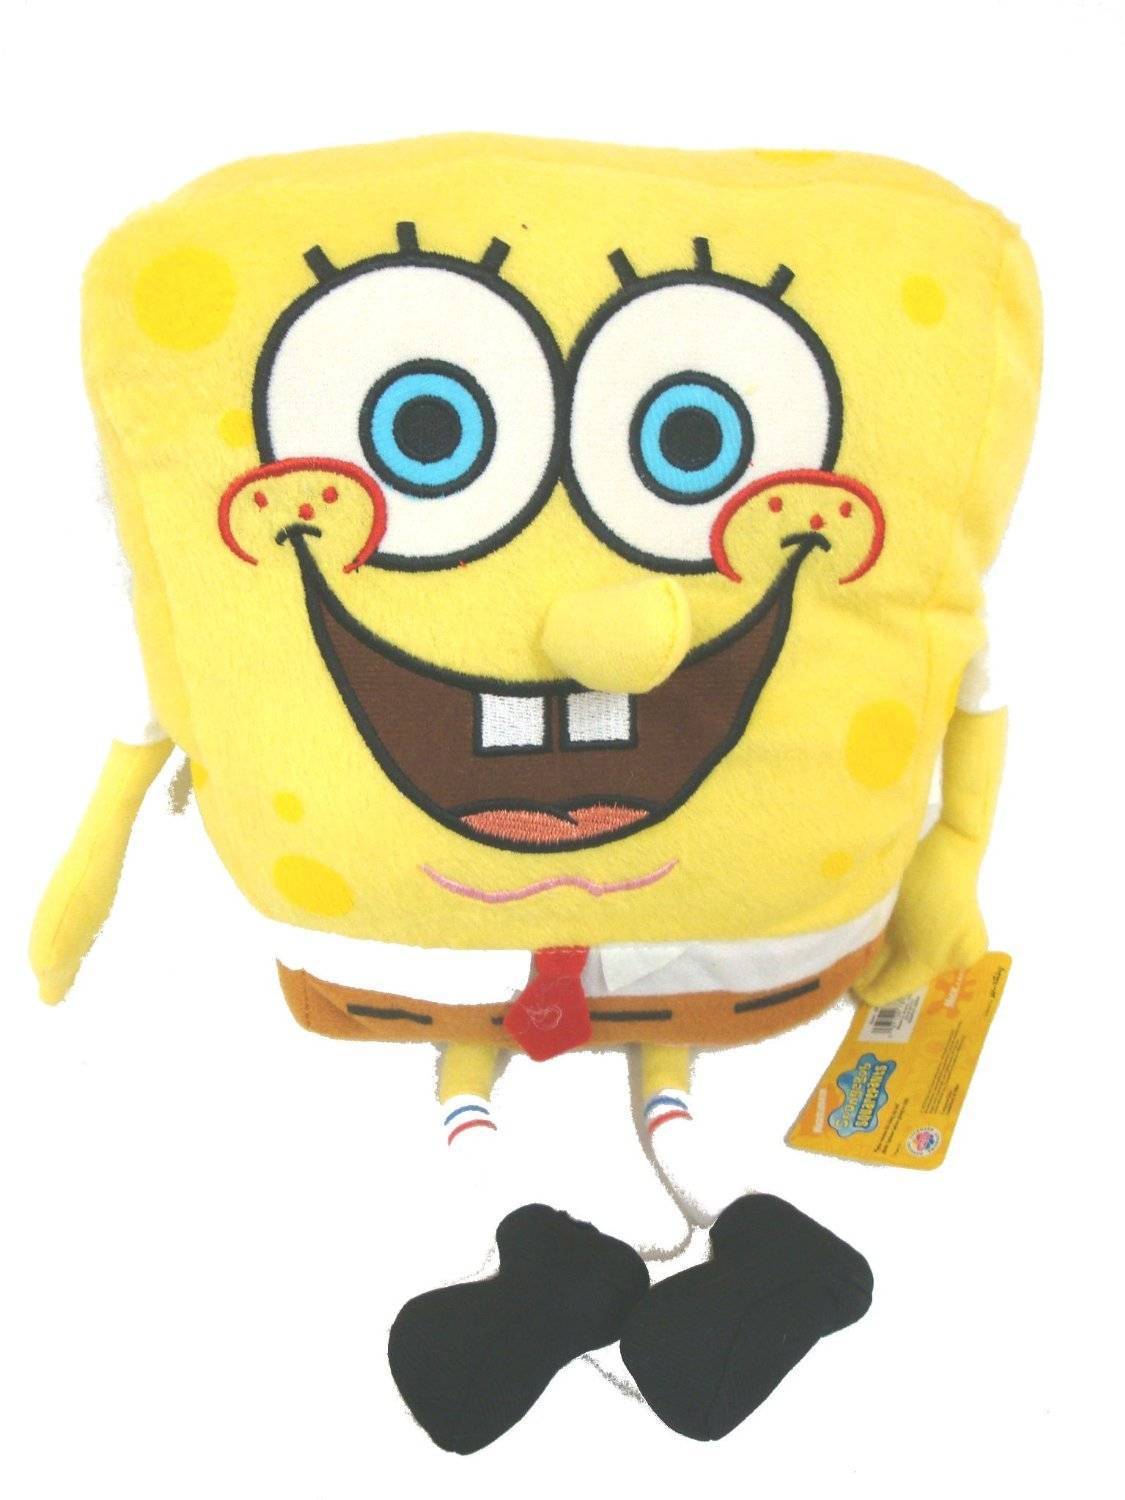 Spongebob Squarepants Plush Doll Toy 13